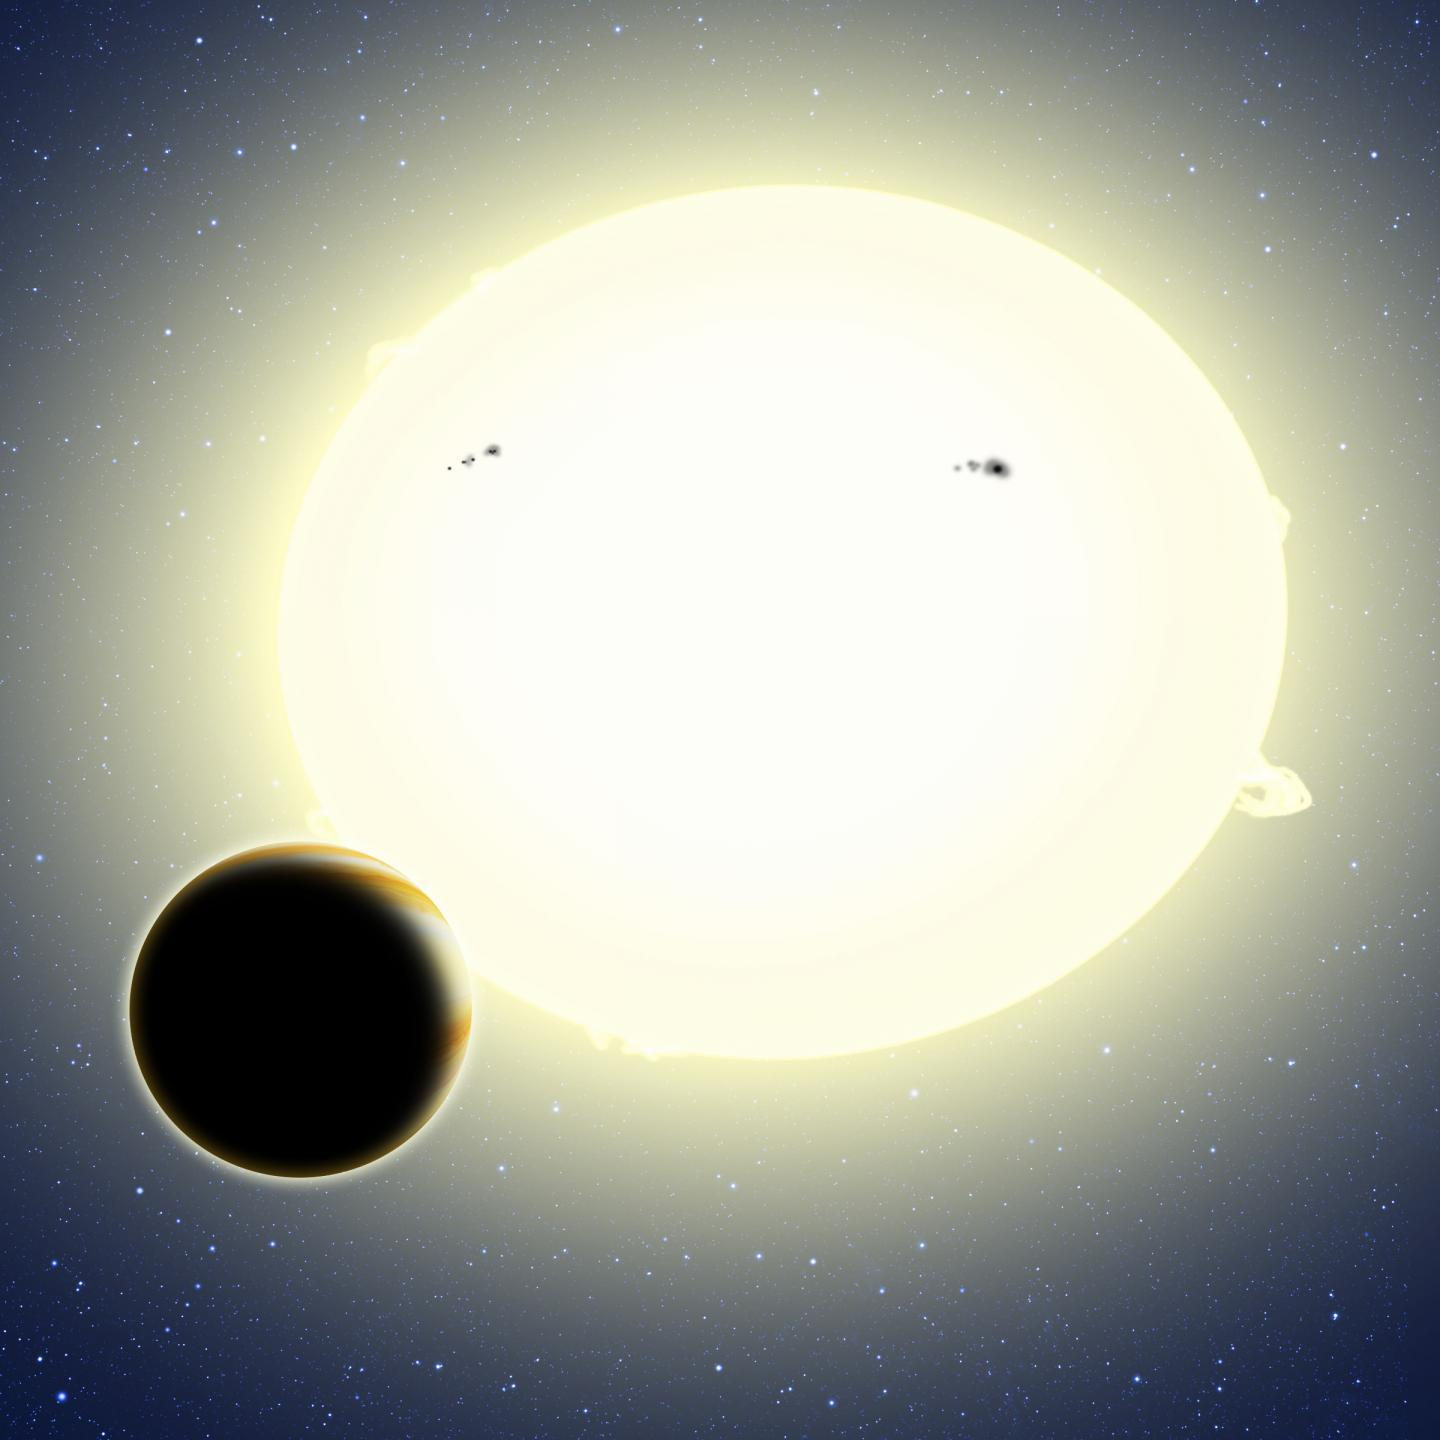 HIP 116454b Shows That Despite Malfunction, Kepler Can Still Find Planets